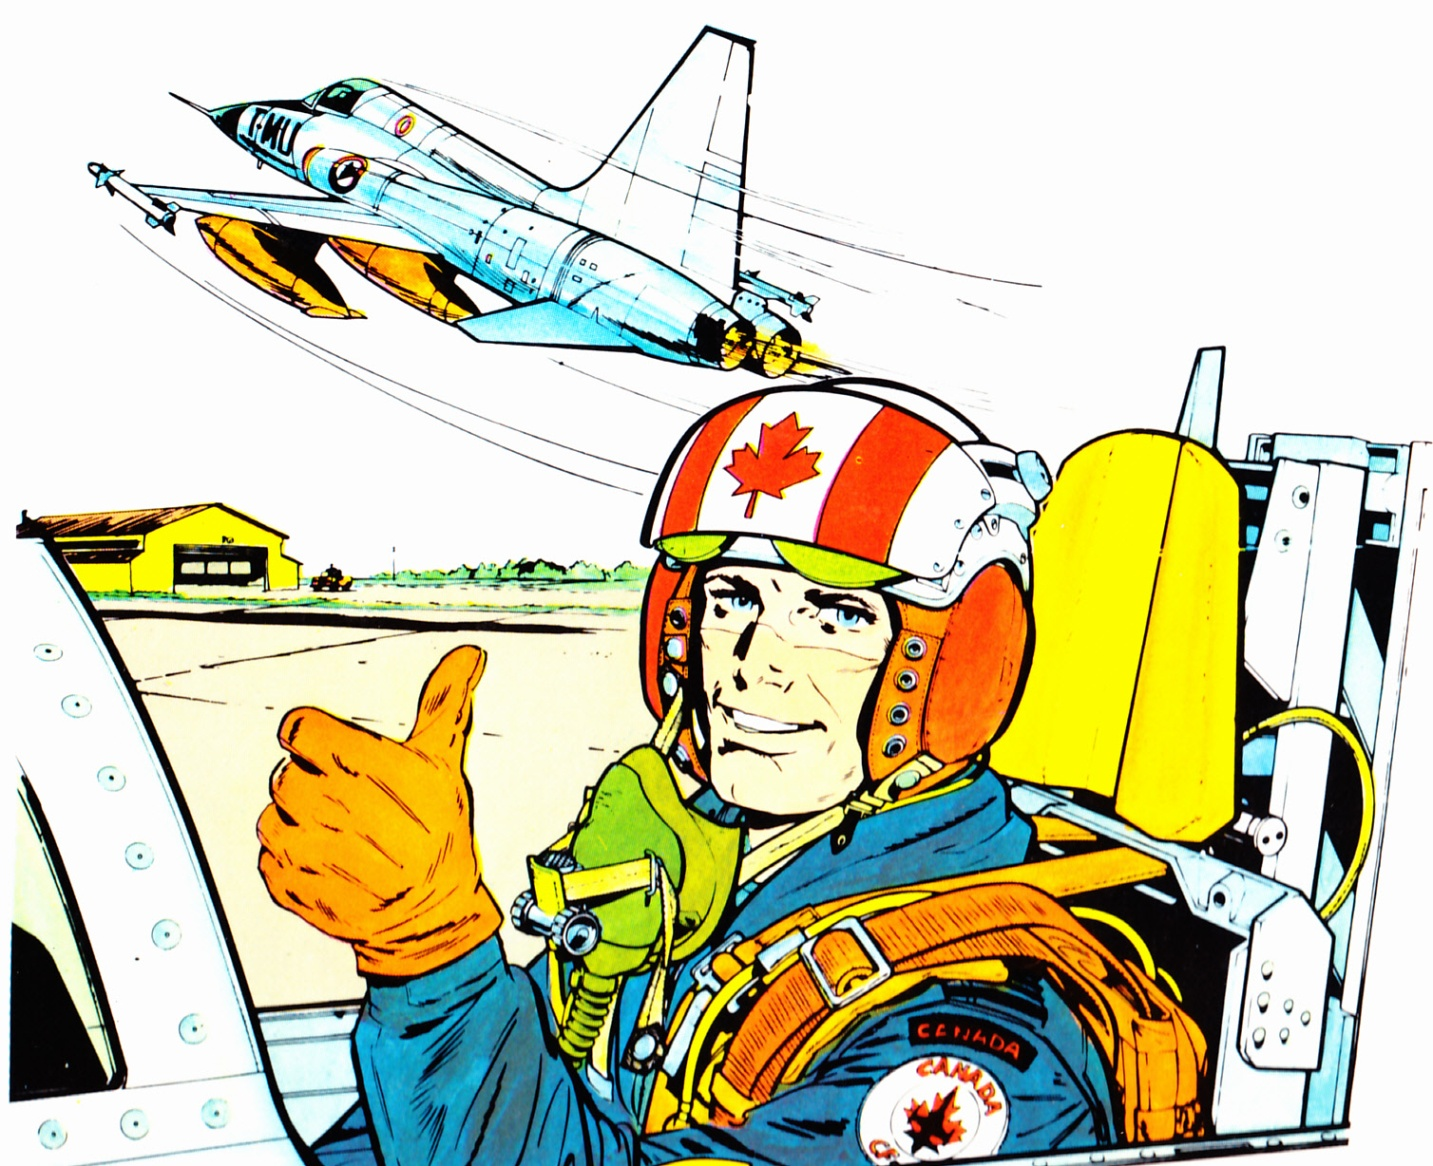 C:\Users\Robert\Documents\CARTOONING ILLUSTRATION ANIMATION\IMAGE CARTOON\IMAGE CARTOON D\DAN COOPER, Azimut Zero, 1984, fc.jpg